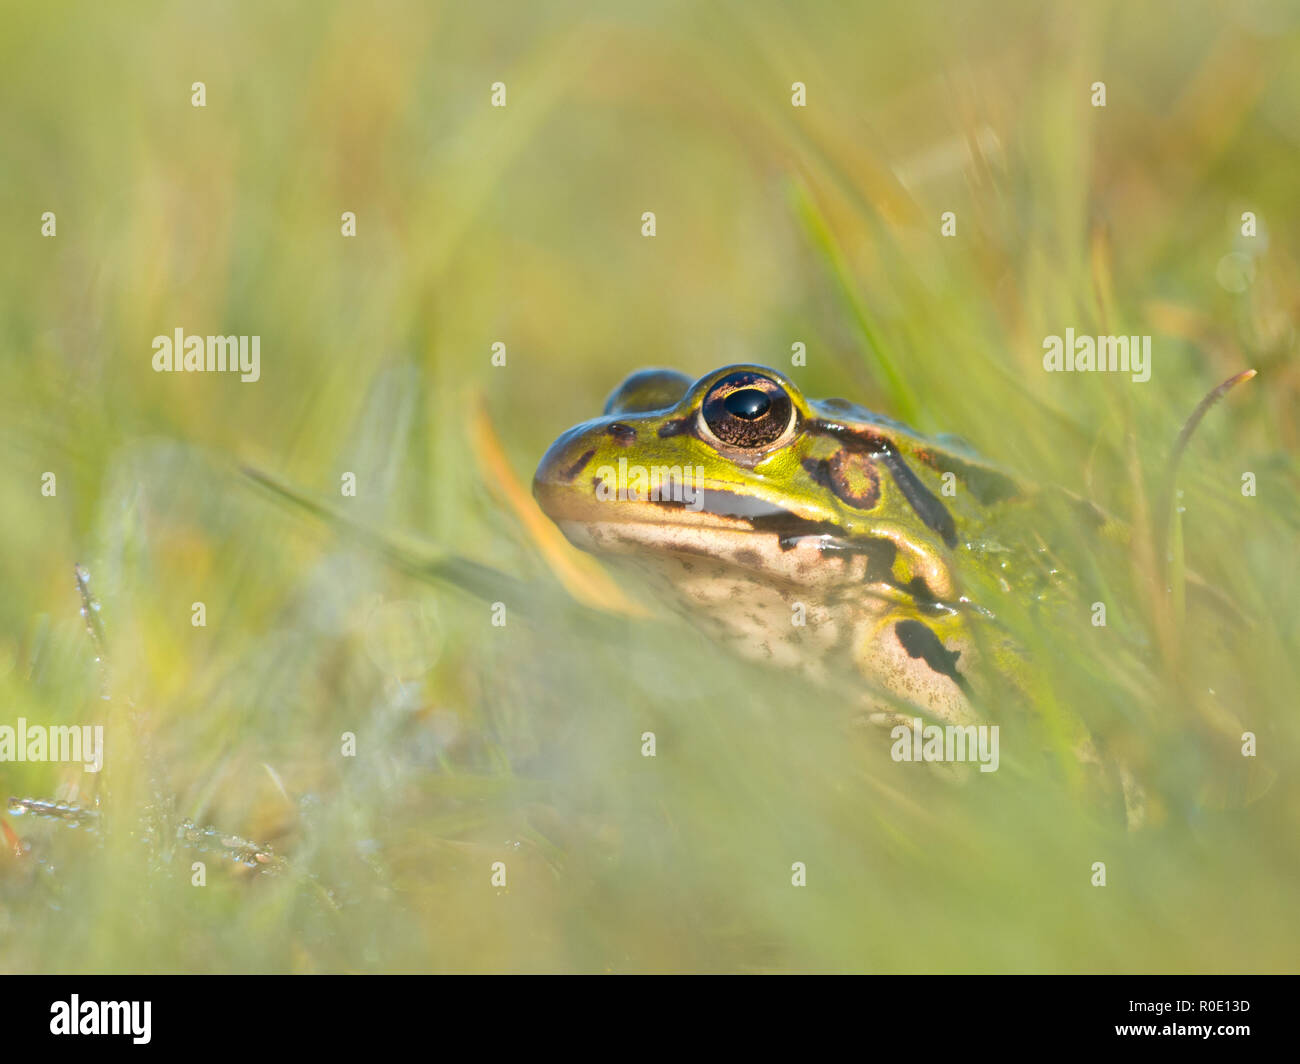 Edible frog (Pelophylax esculentus) is peeking from grass with morning dew - Stock Image